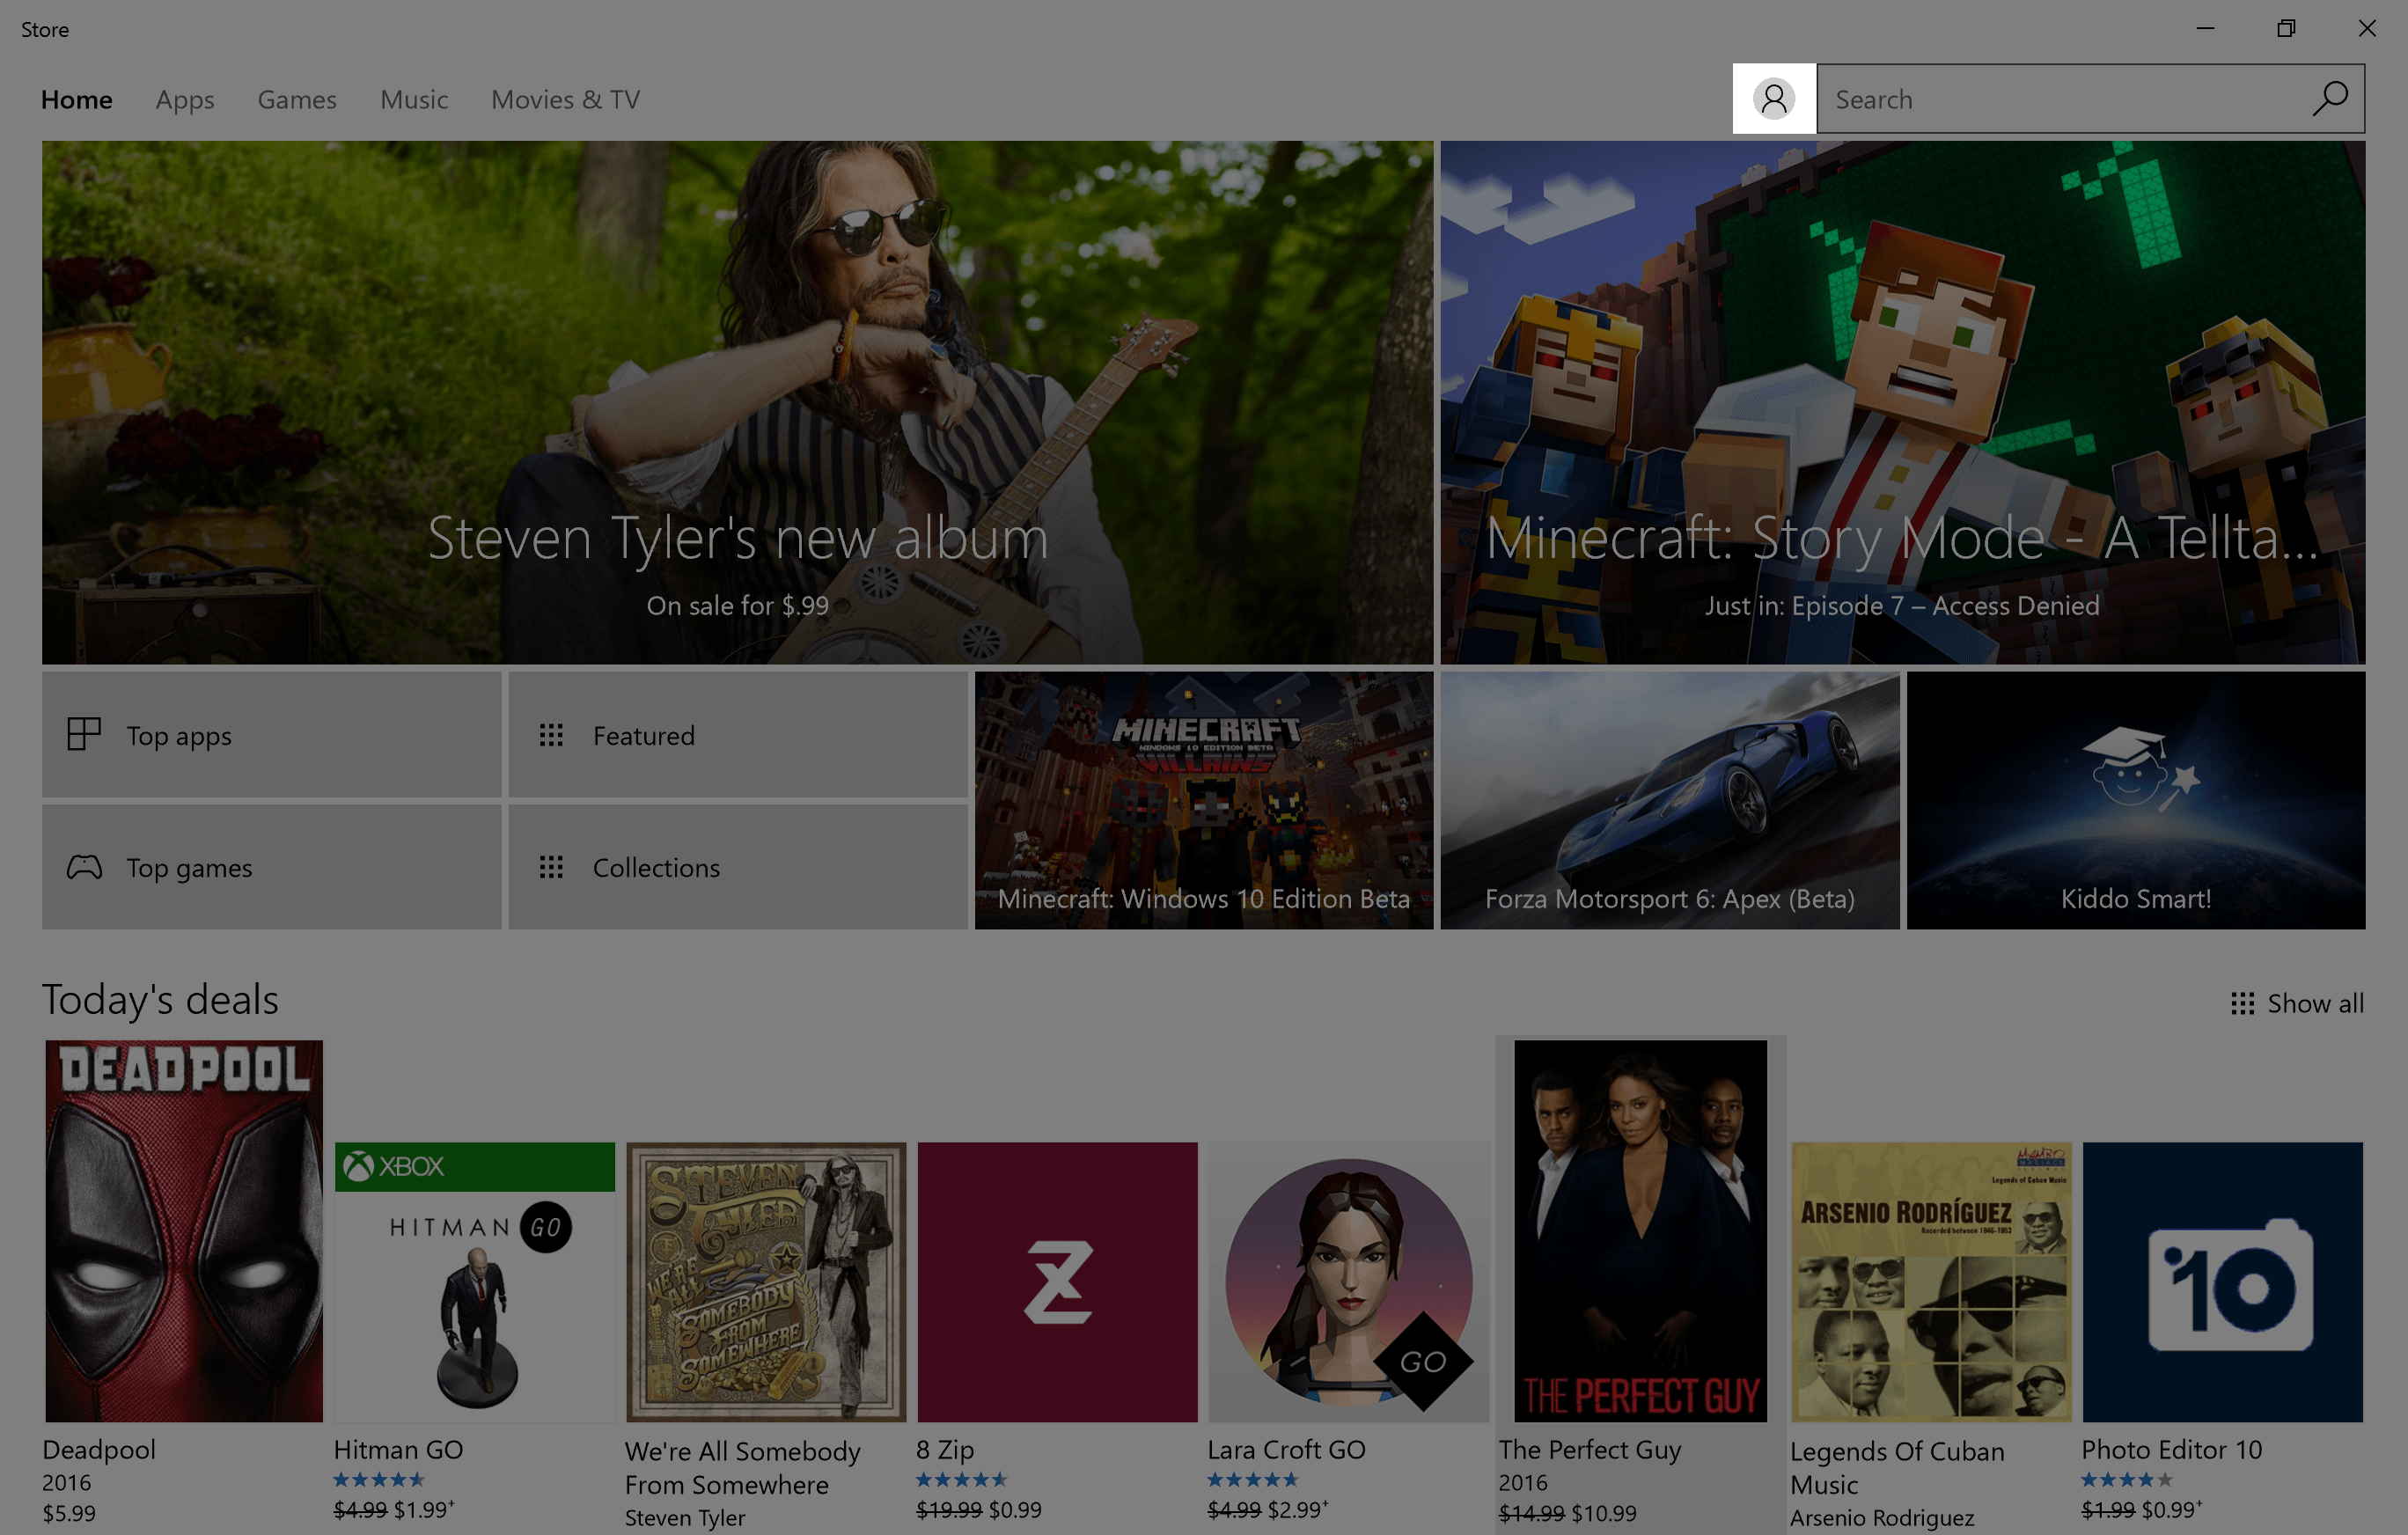 image of windows store with search highlighted